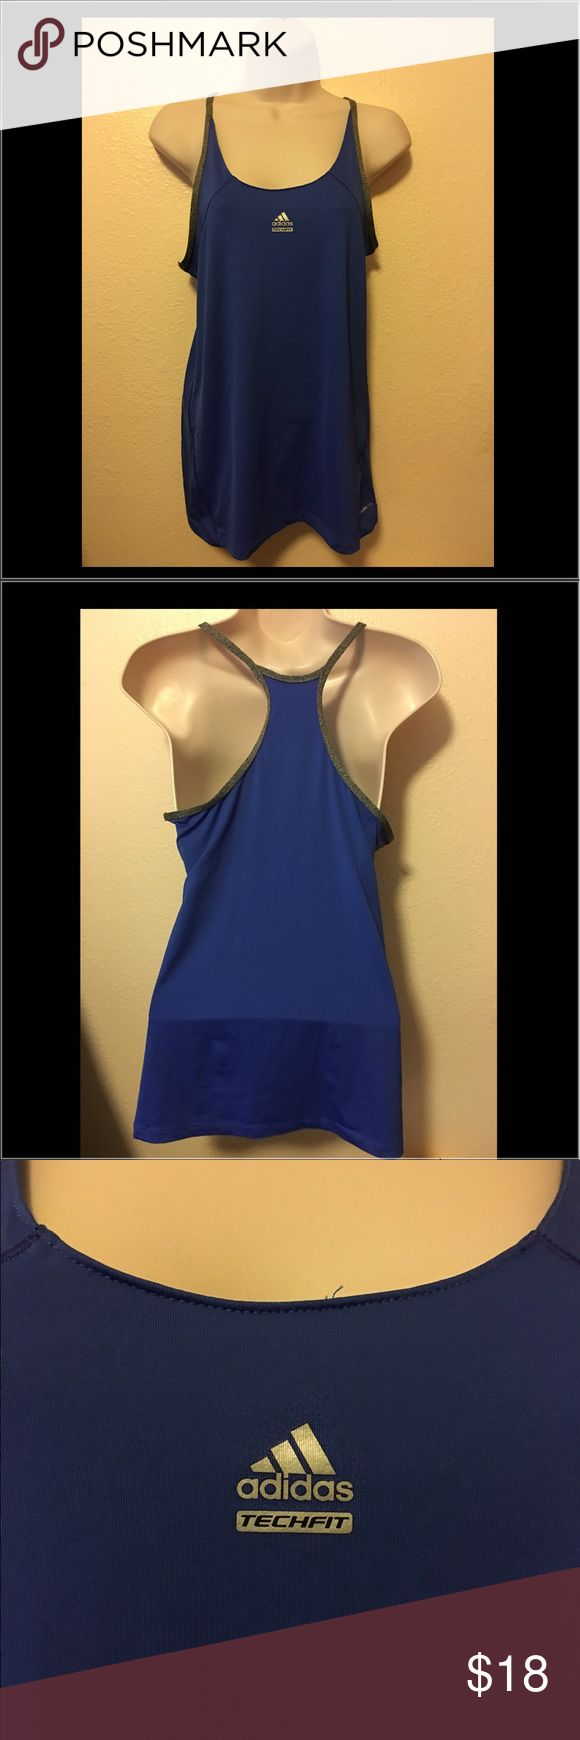 Pre-Owned Adidas Climalite exercise tops Blue Sz M Pre-Owned Adidas Climalite exercise tops Blue Sz M. Polyester, In good condition adidas Tops Tank Tops